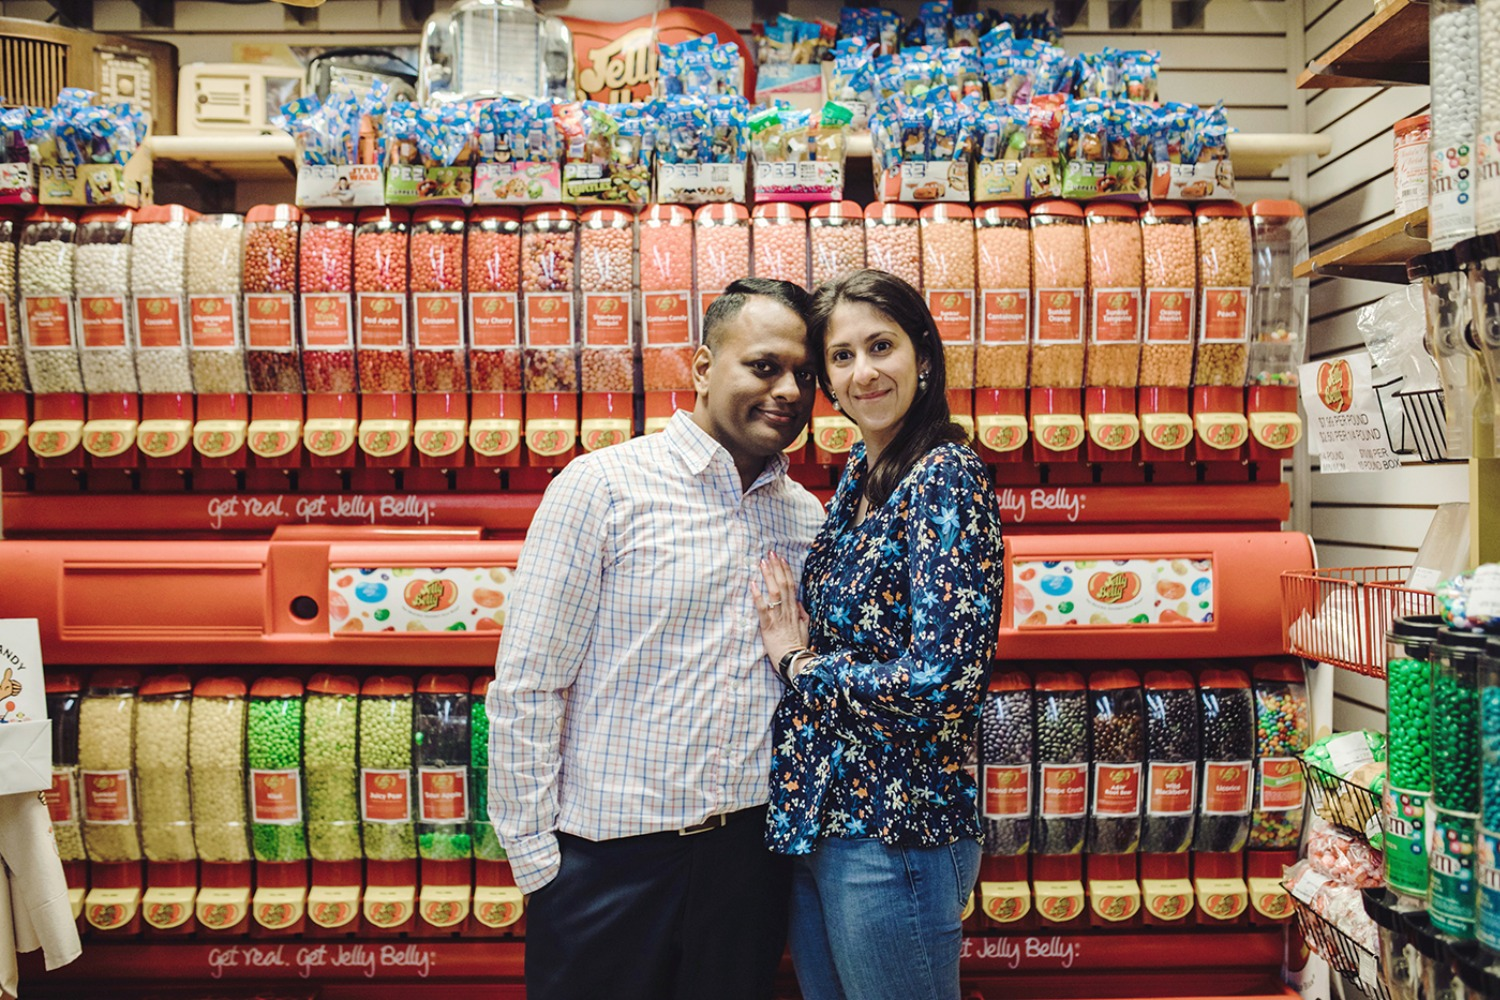 Economy Candy store engagement shoot